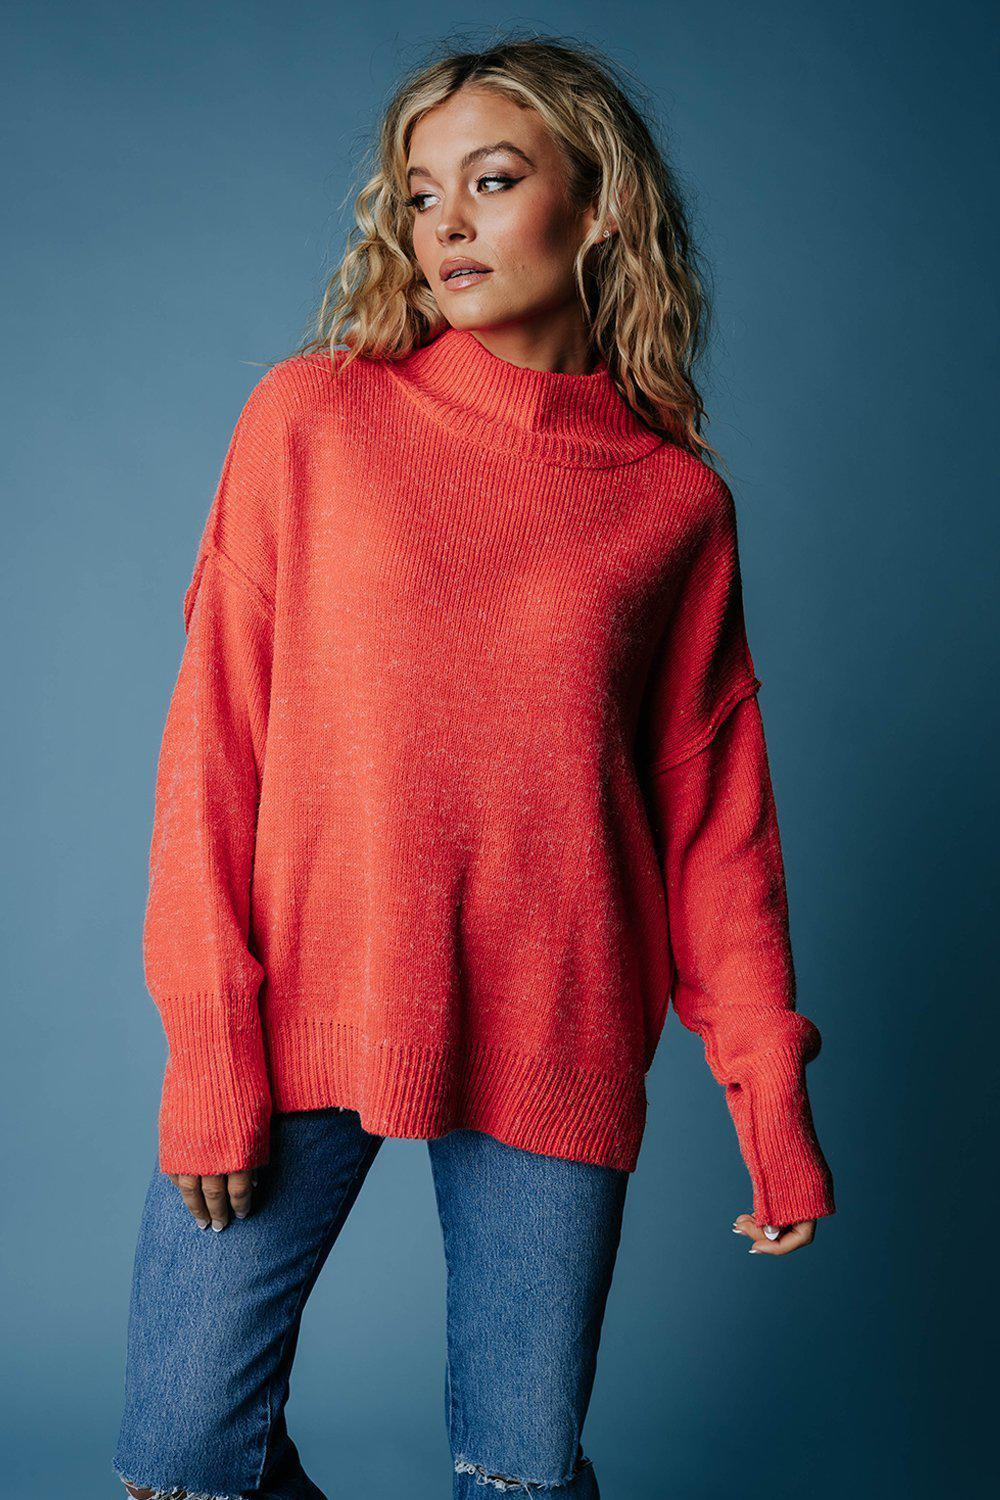 best_seller, One Man Show Pullover in Scarlet, Top, women's clothing, dresses, skirts, coats, jackets, shoes, boots, tops, tee shirts, jeans, free people, levi's, rollas, jumpsuits, bottoms, tops, sweaters, pullovers, pants, shorts, sweats,.